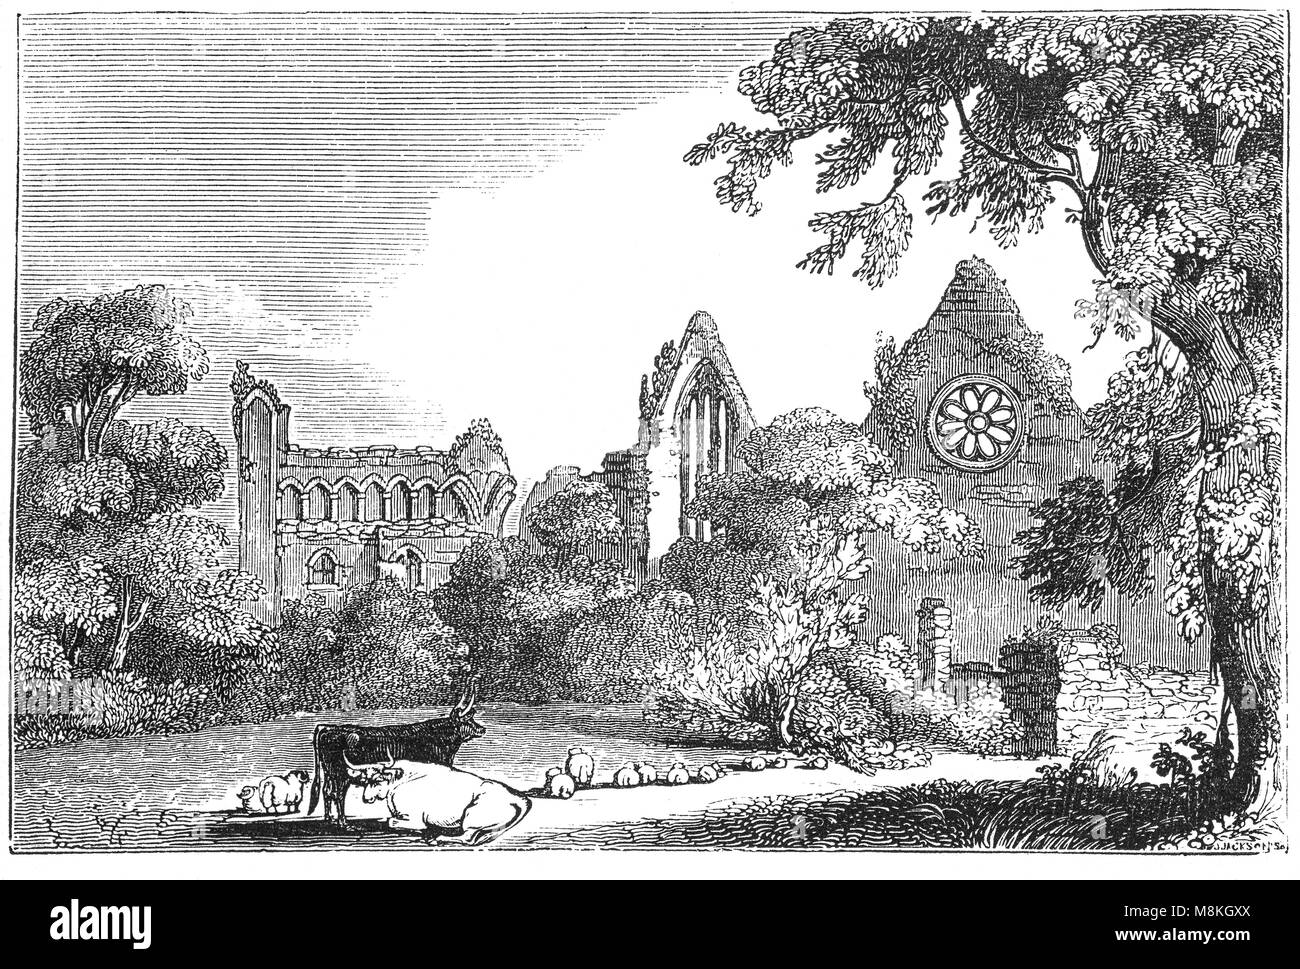 Cattle and sheep in front of Dryburgh Abbey on the banks of the River Tweed in the Scottish Borders. It was nominally - Stock Image